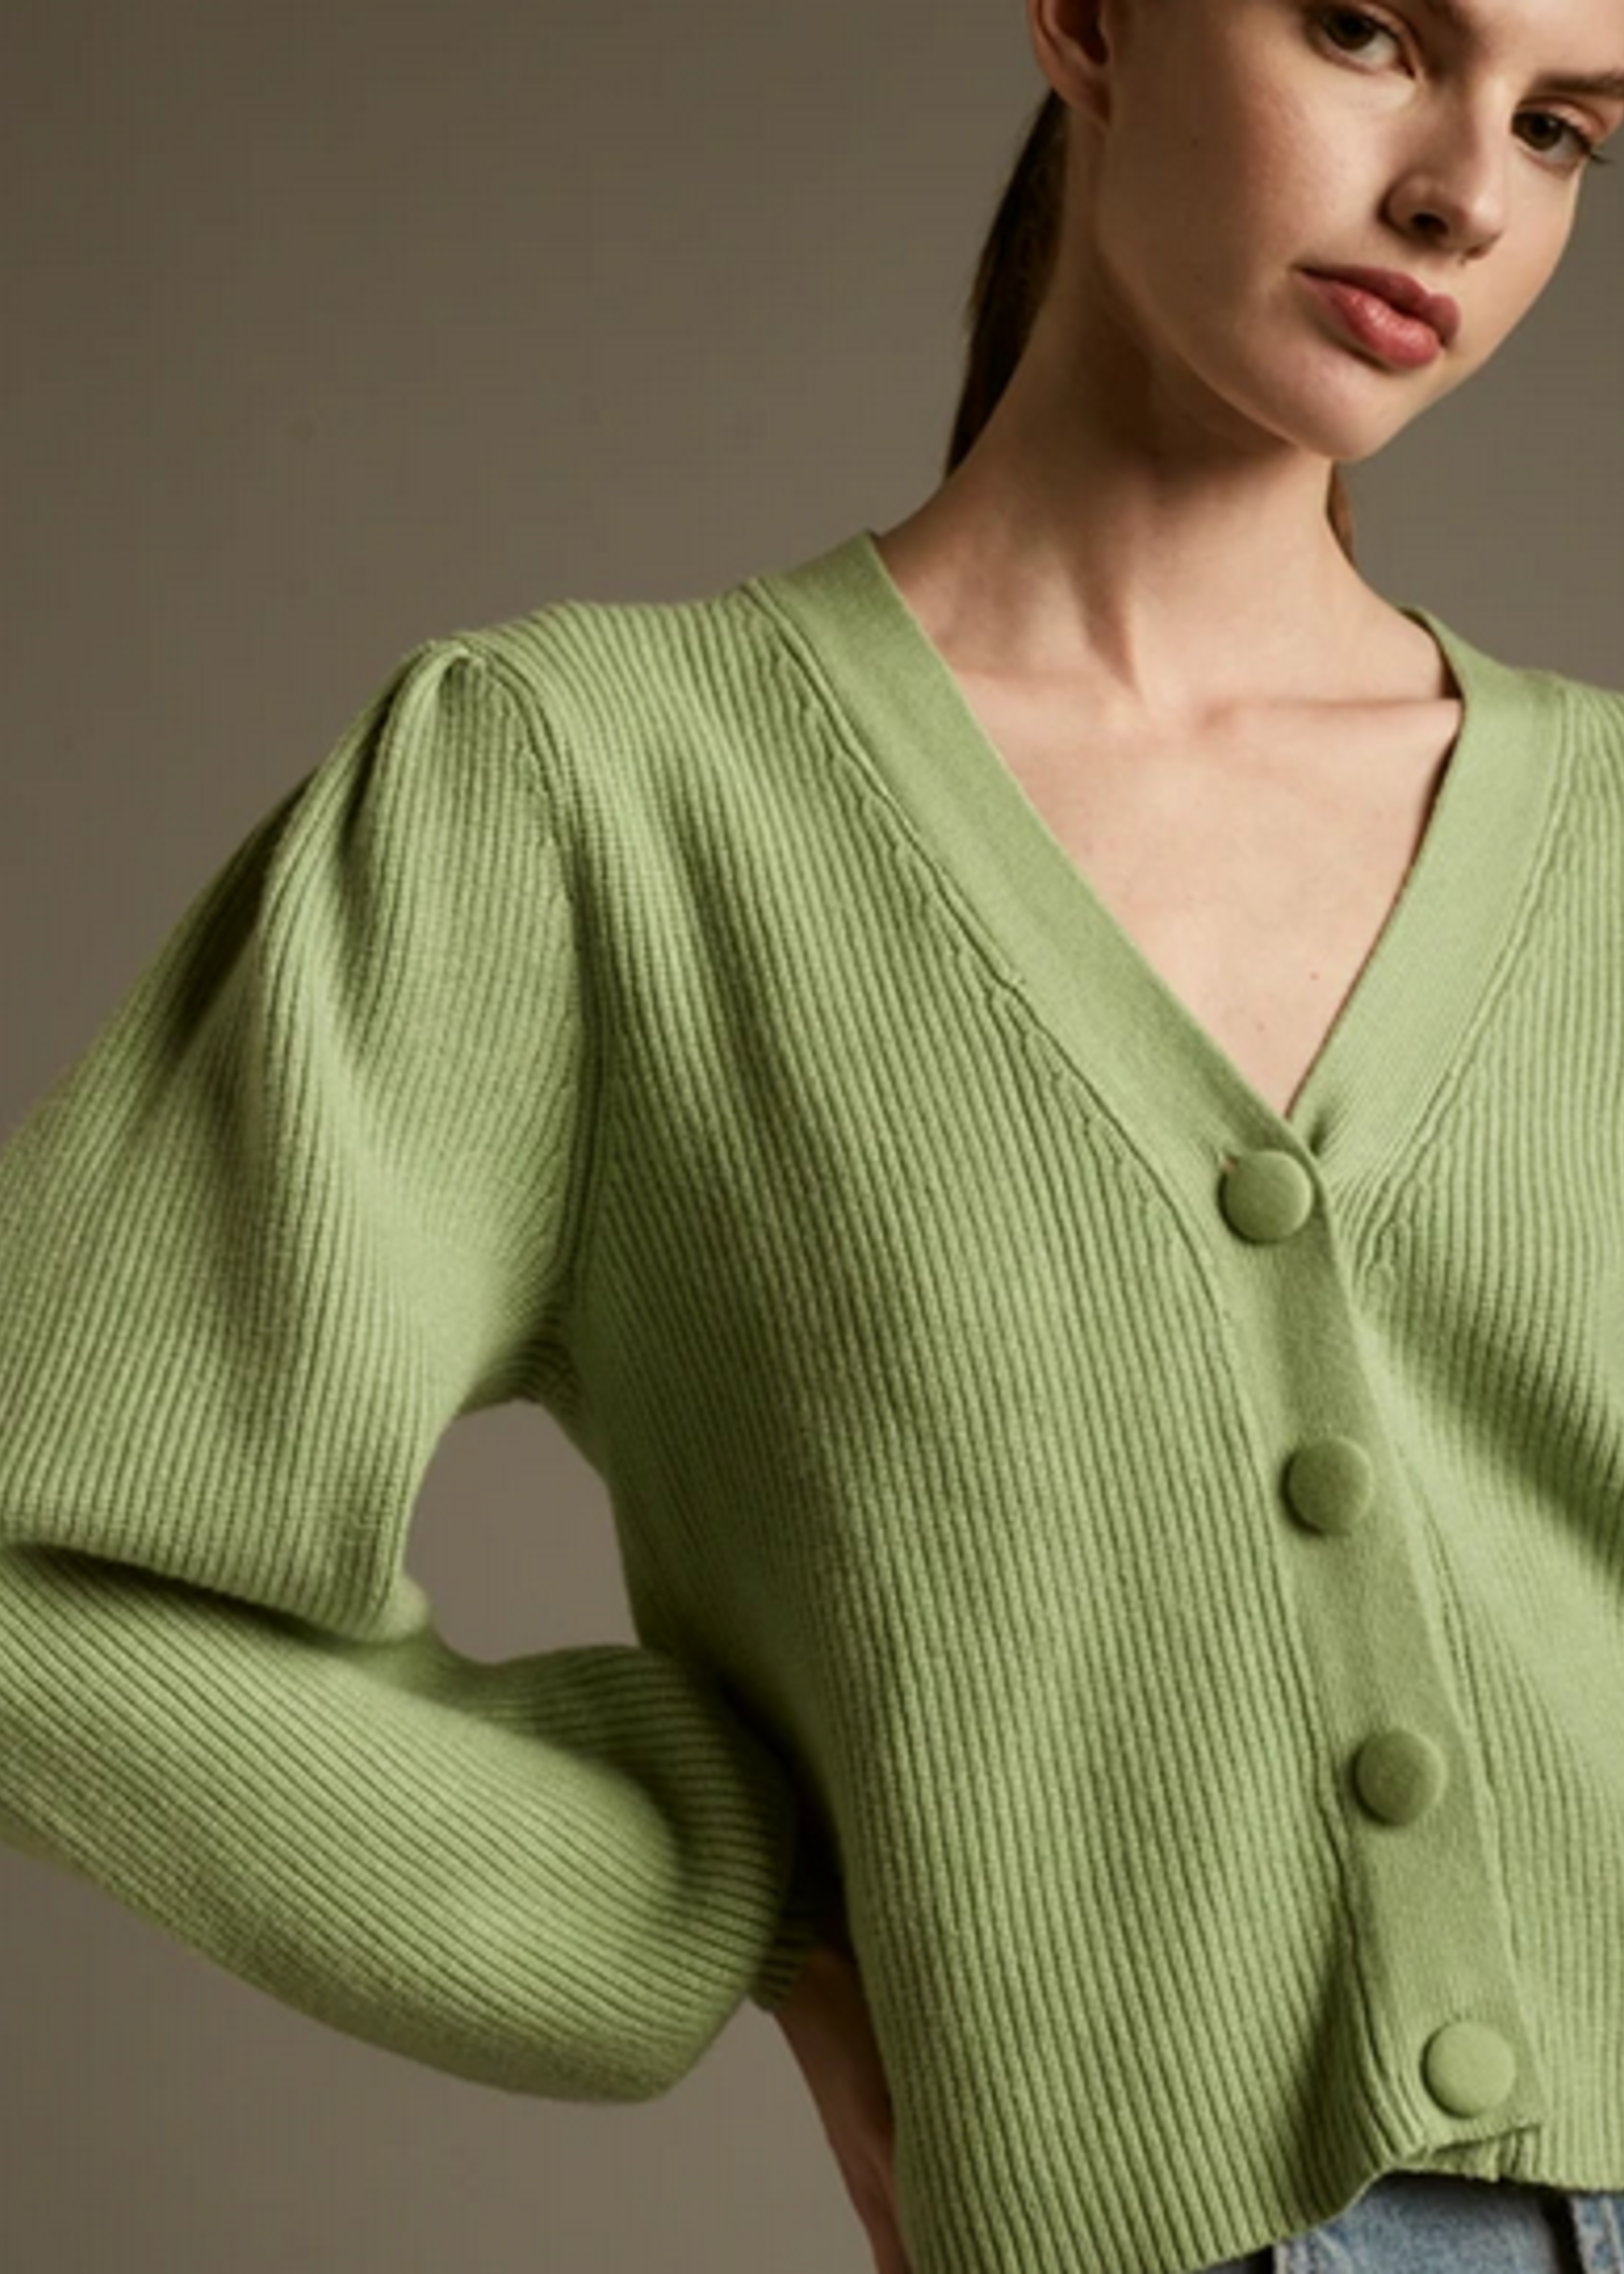 Elitaire Boutique The Nala Cardigan in Mint